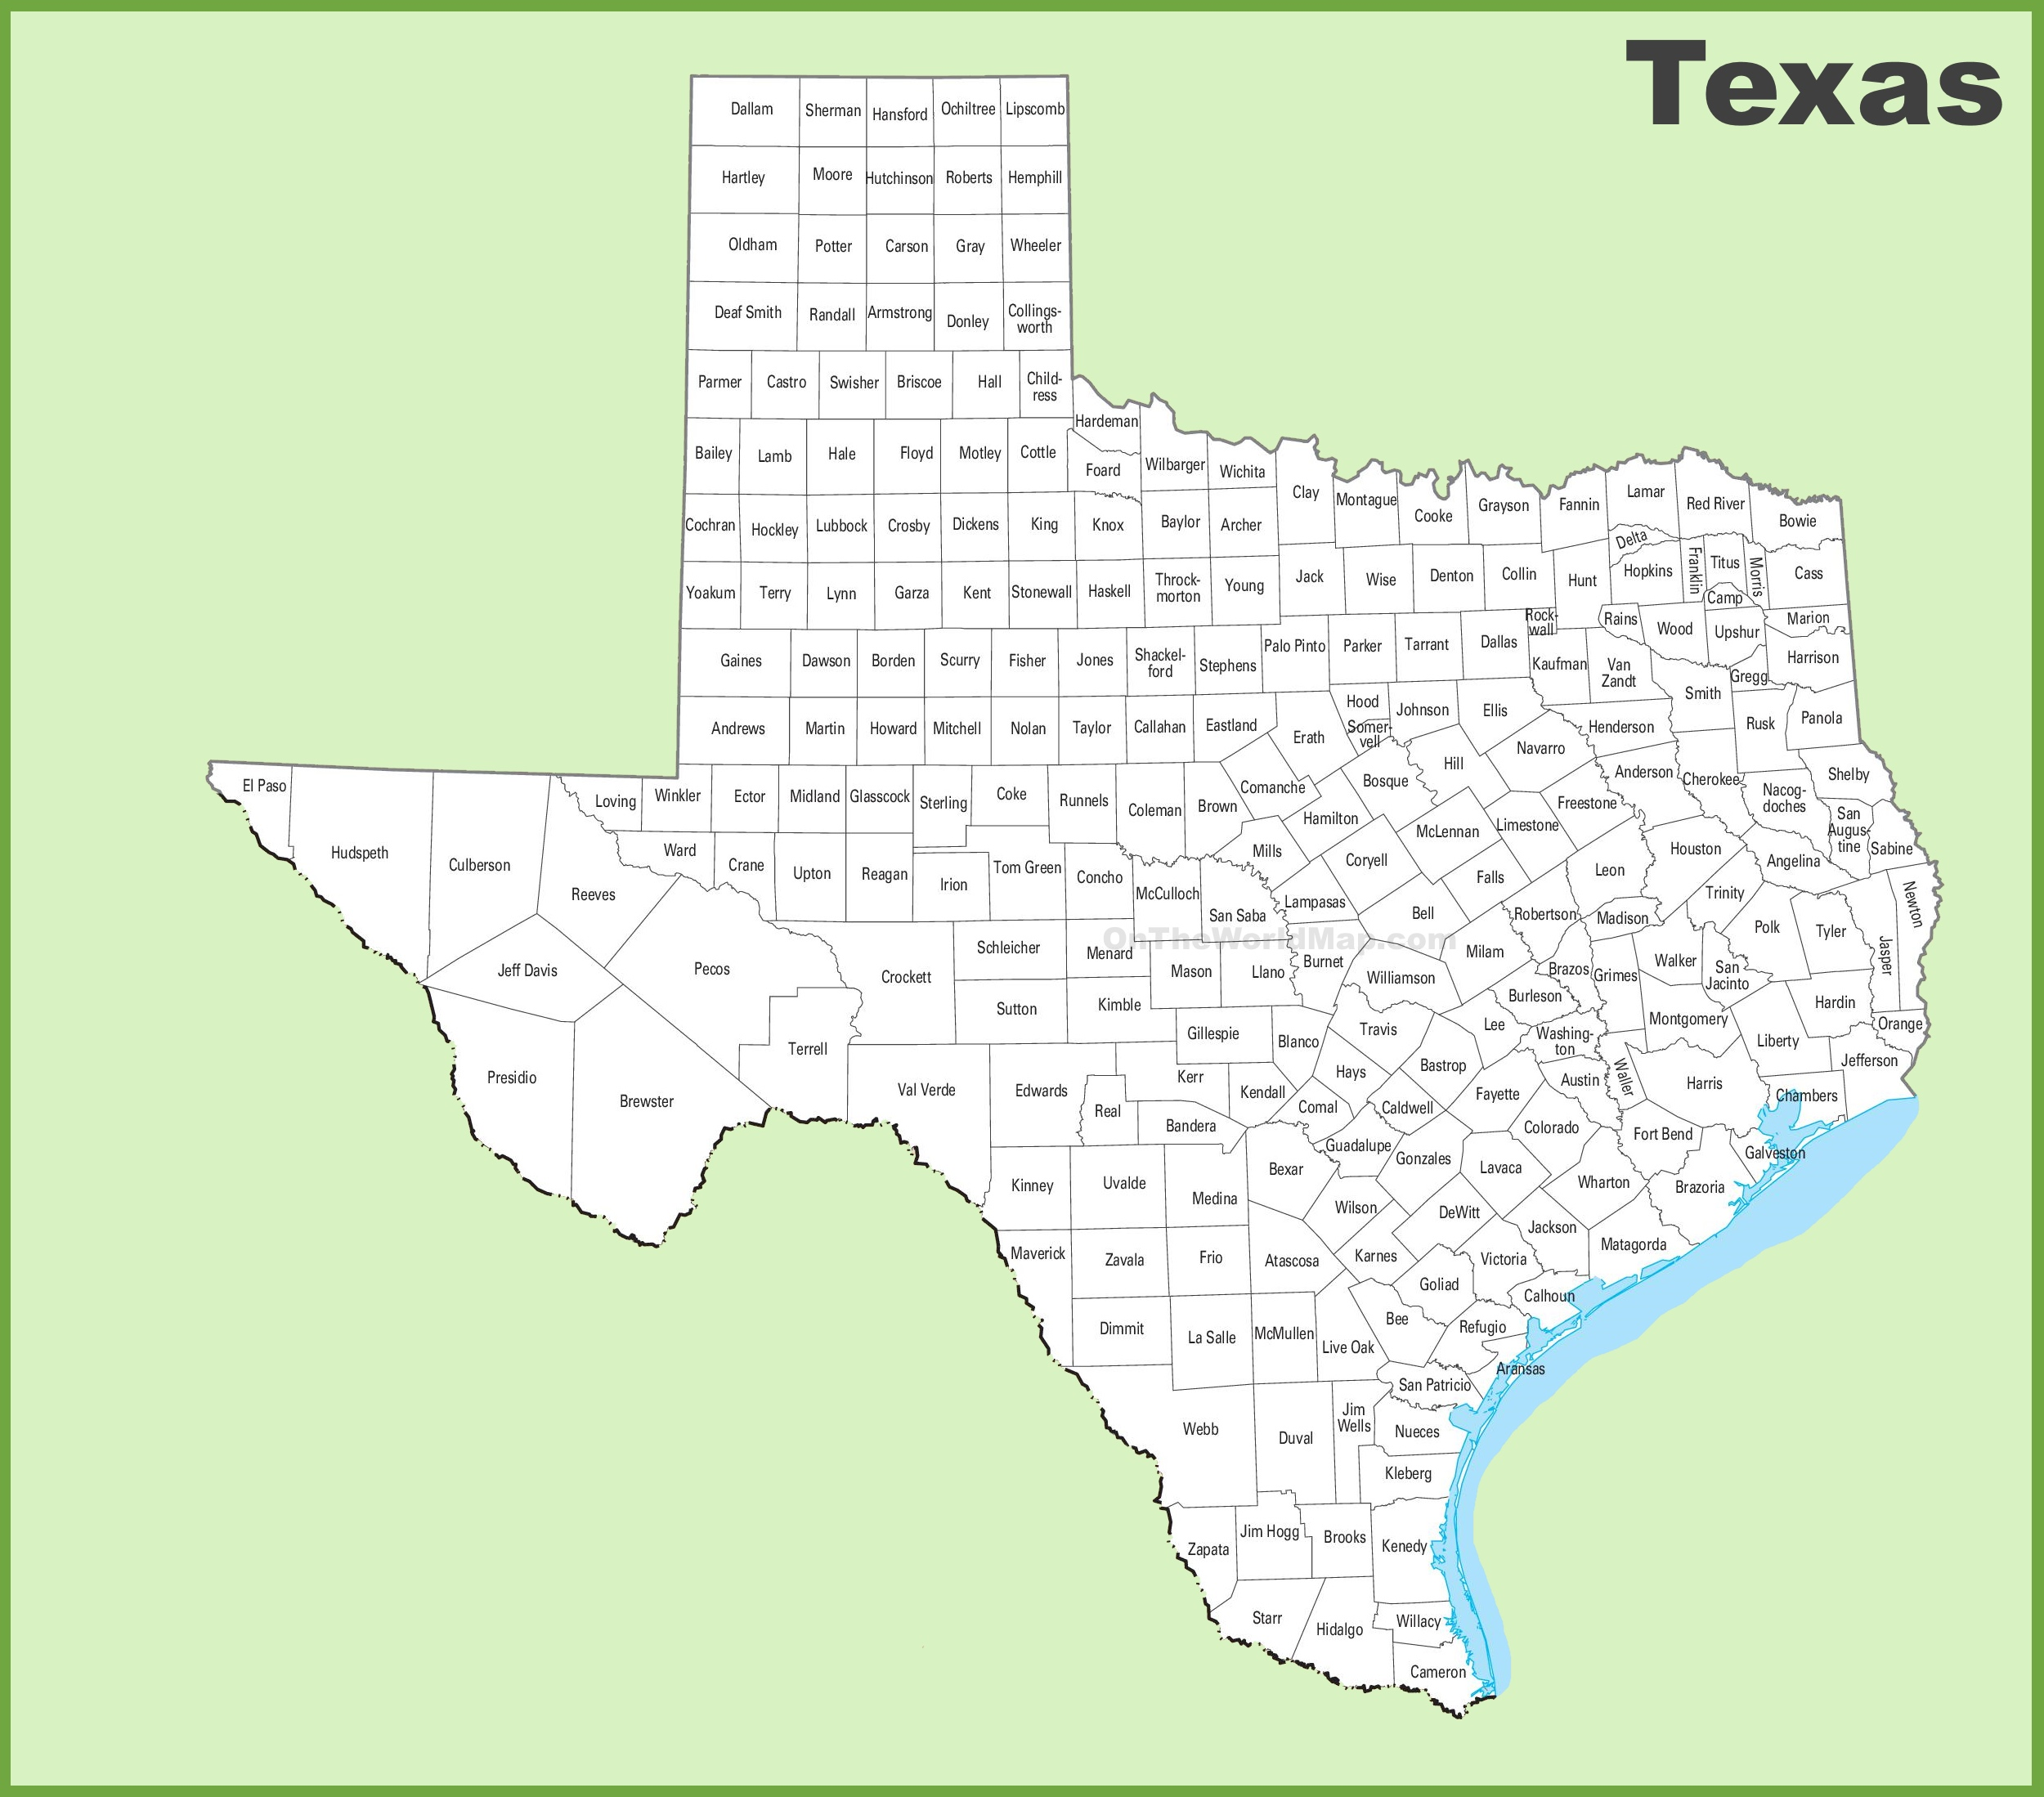 Texas State Maps USA Maps Of Texas TX - State of texas map